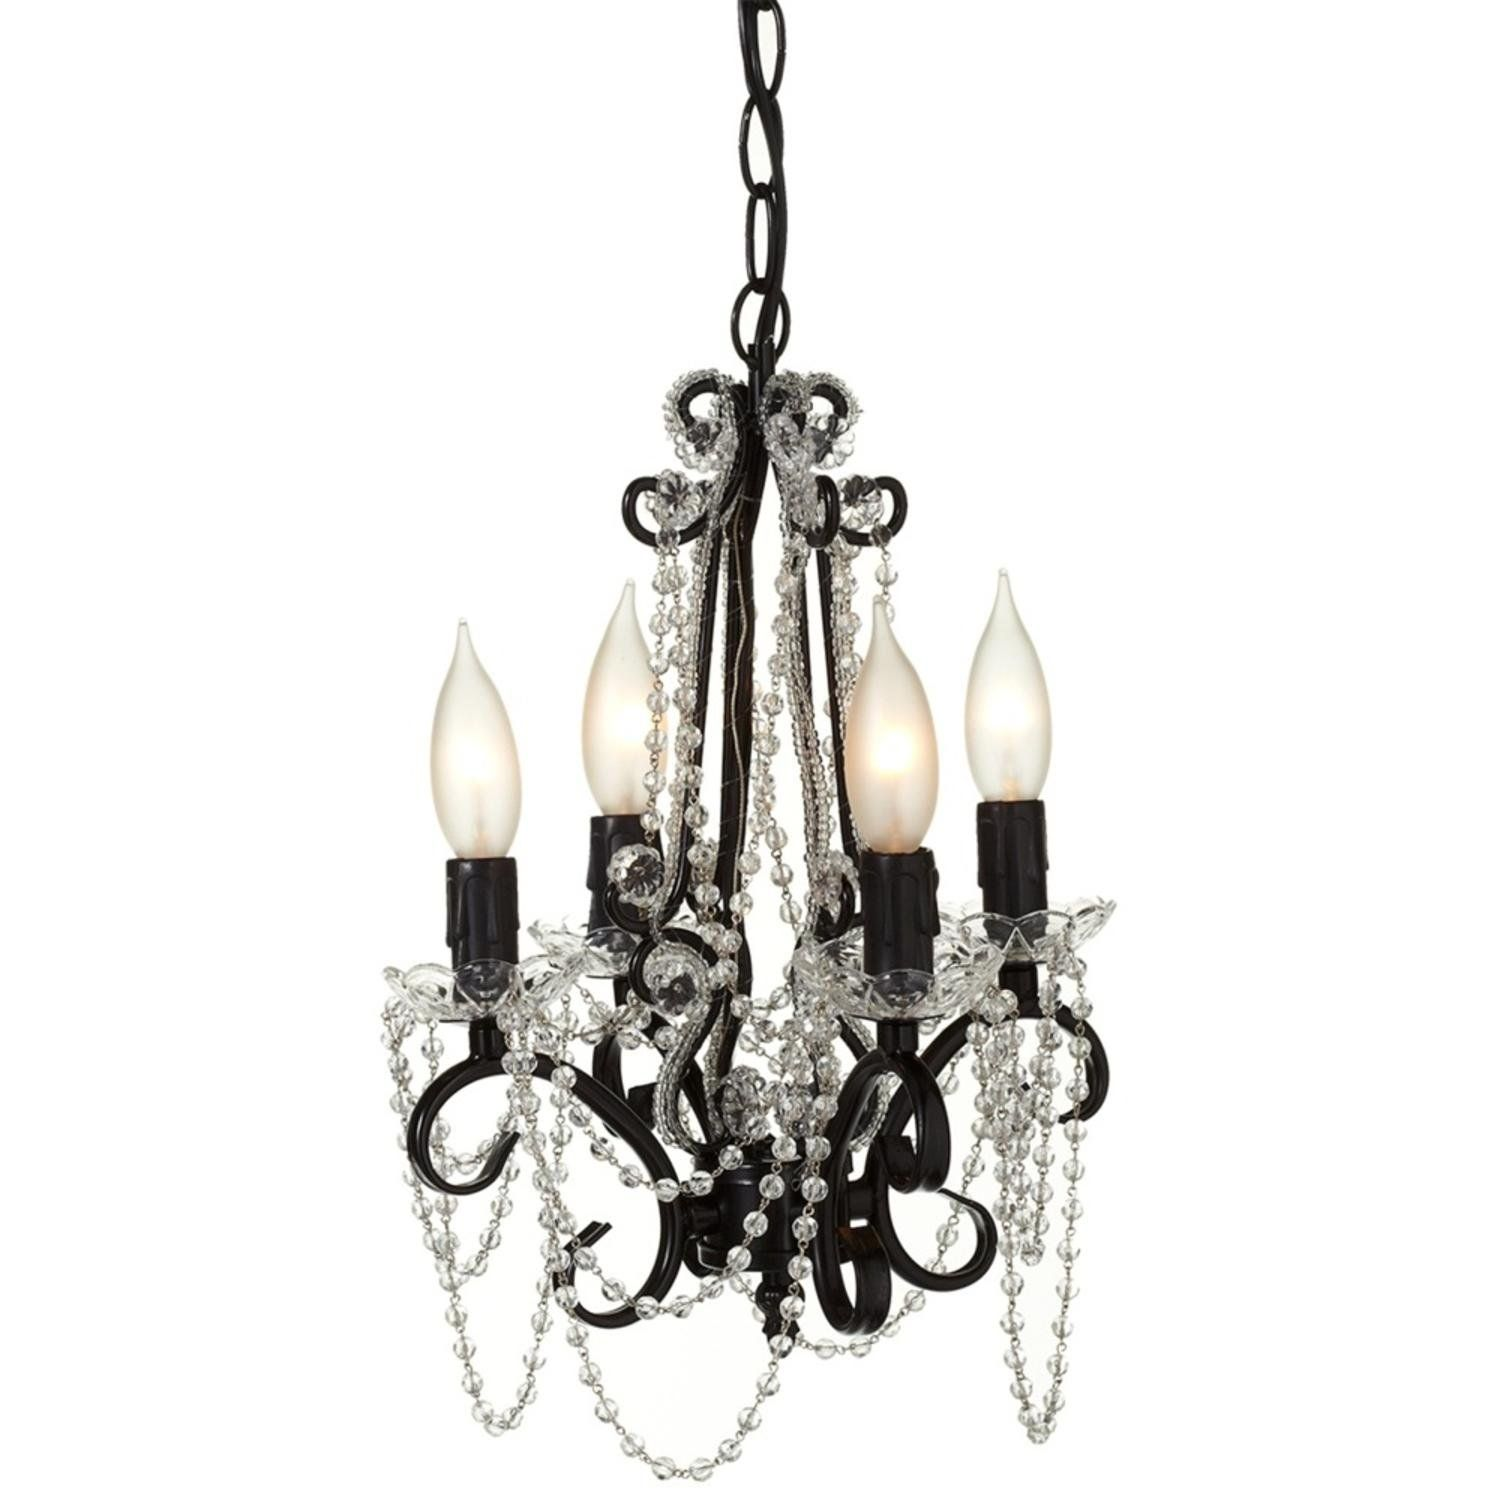 Diva At Home 14 Black Beaded Four Arm Chandelier 25w Max Plug In With Hard Wire Kit Included Candle Style Chandelier Metal Chandelier Country Kitchen Lighting